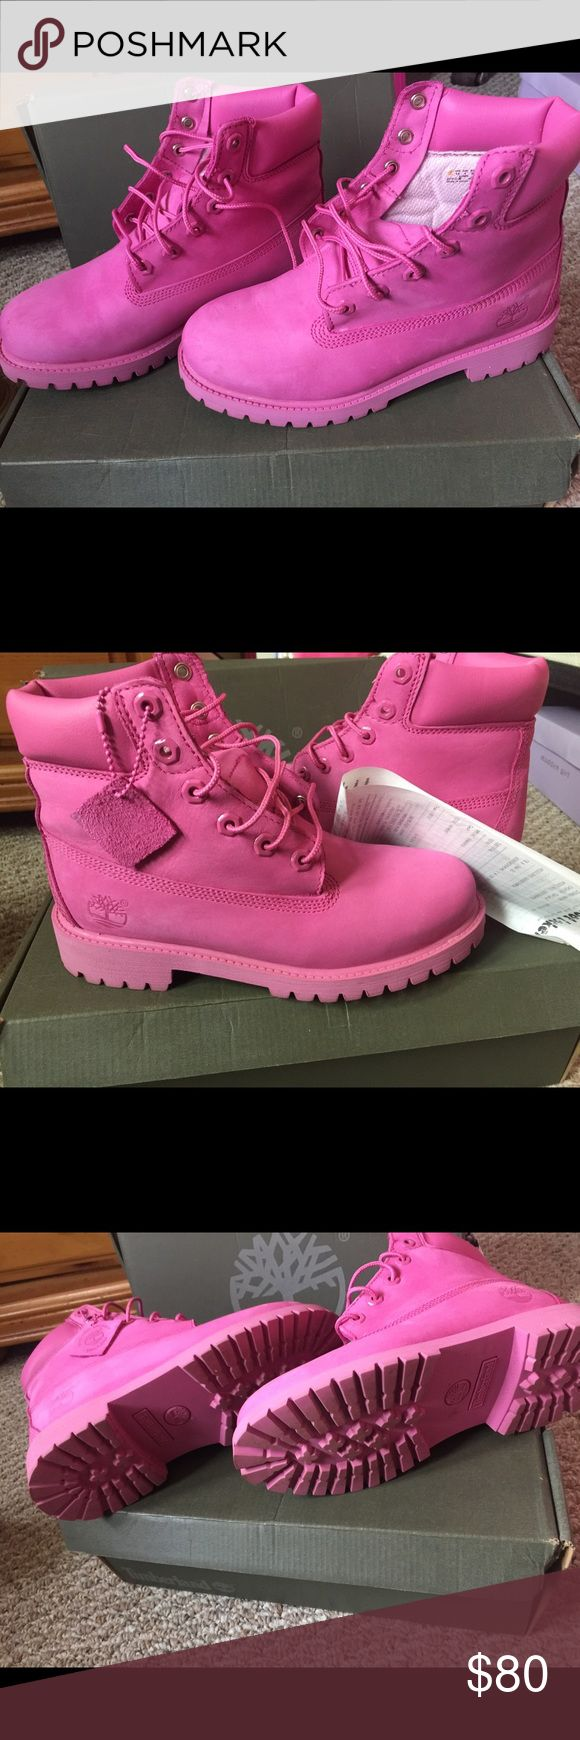 Genuine Leather Timberland Boots 💕Hello to all the pink lovers here I have these fabulous Timberland boots that can be paired with your fav pink or white top for the winter. I wore these a few times but the are in very good condition.💕 Timberland Shoes Lace Up Boots